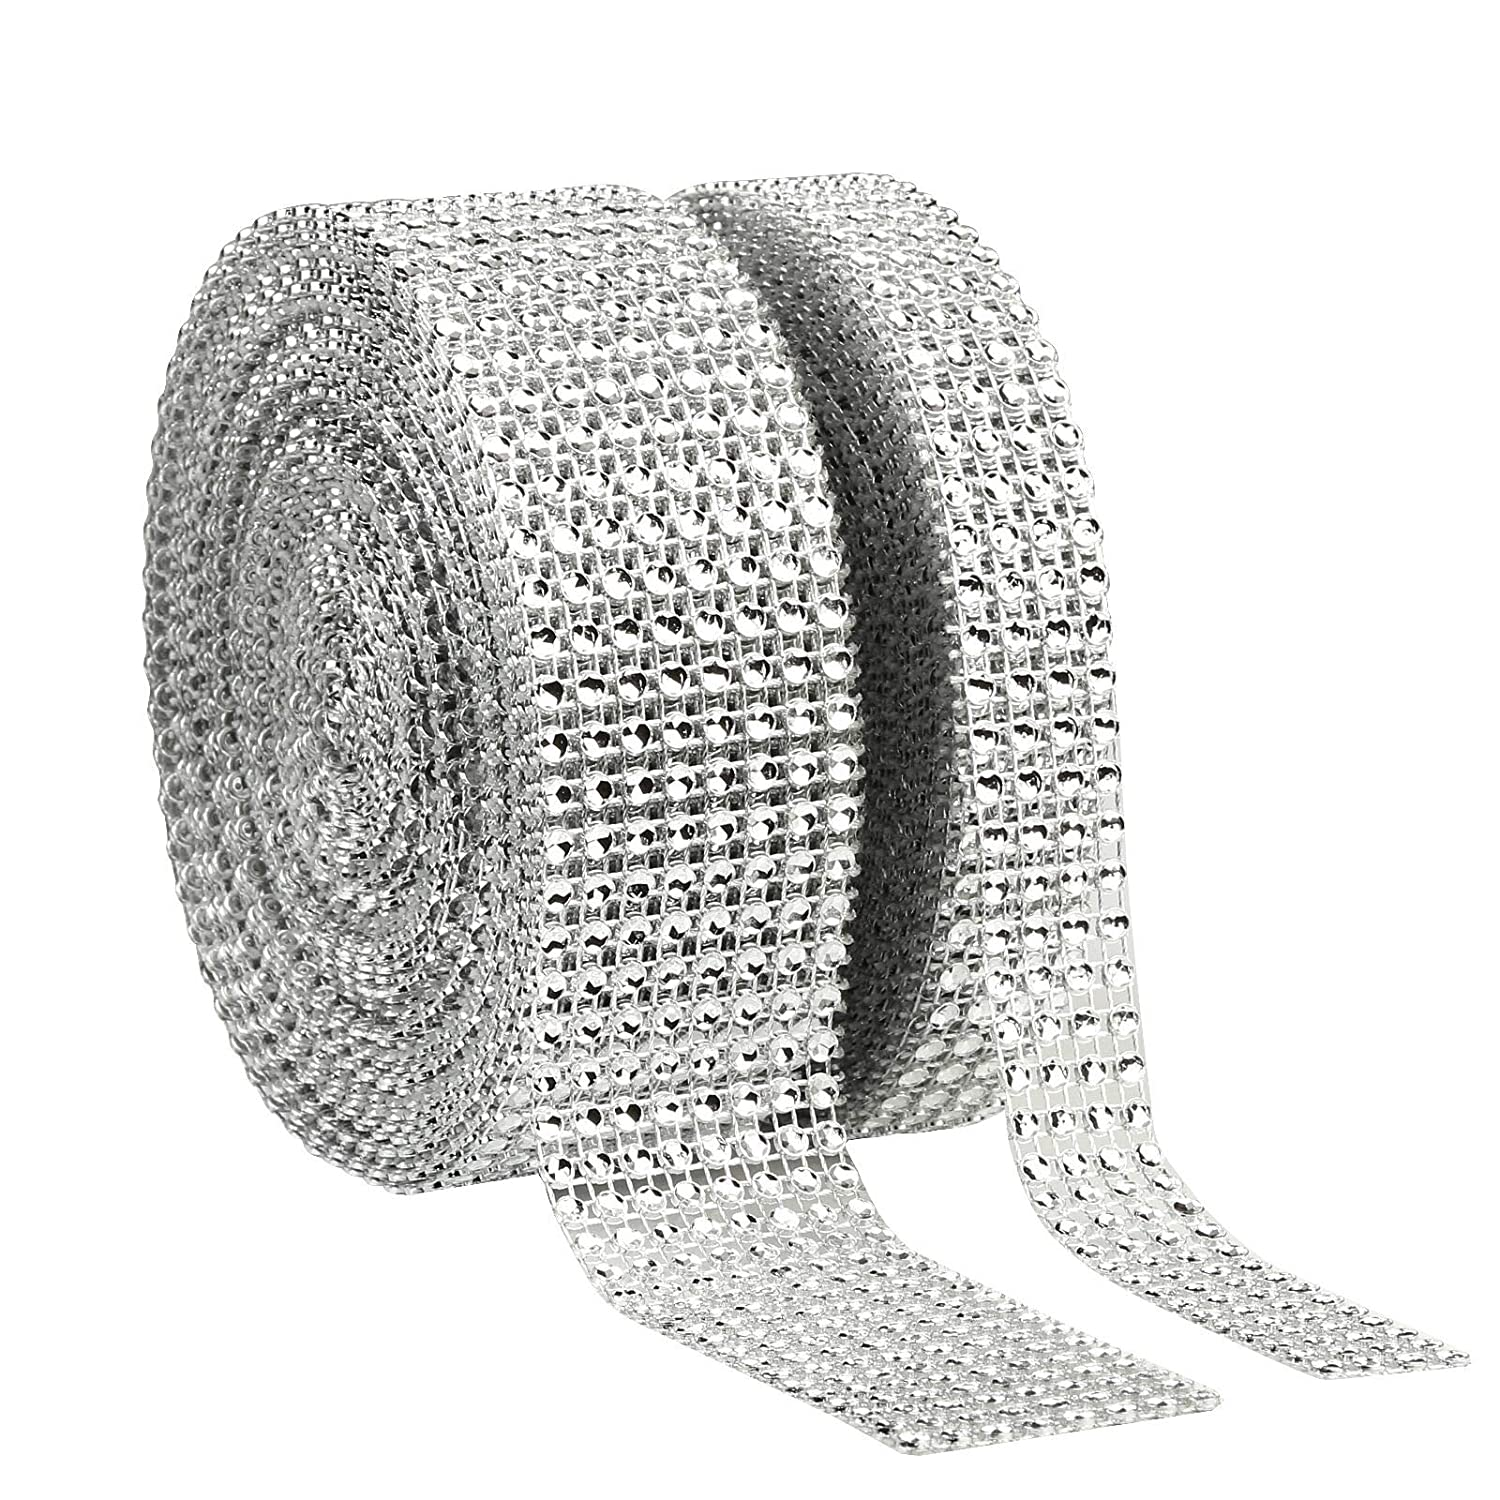 LANMOK Rhinestone Ribbon 8 Row 10 Yard and 4 Row 10 Yard Acrylic Diamond Ribbon Roll Mesh Wrap for Wedding Cake Vase Centerpiece Party Decoration Art Crafts Projects (Silver)